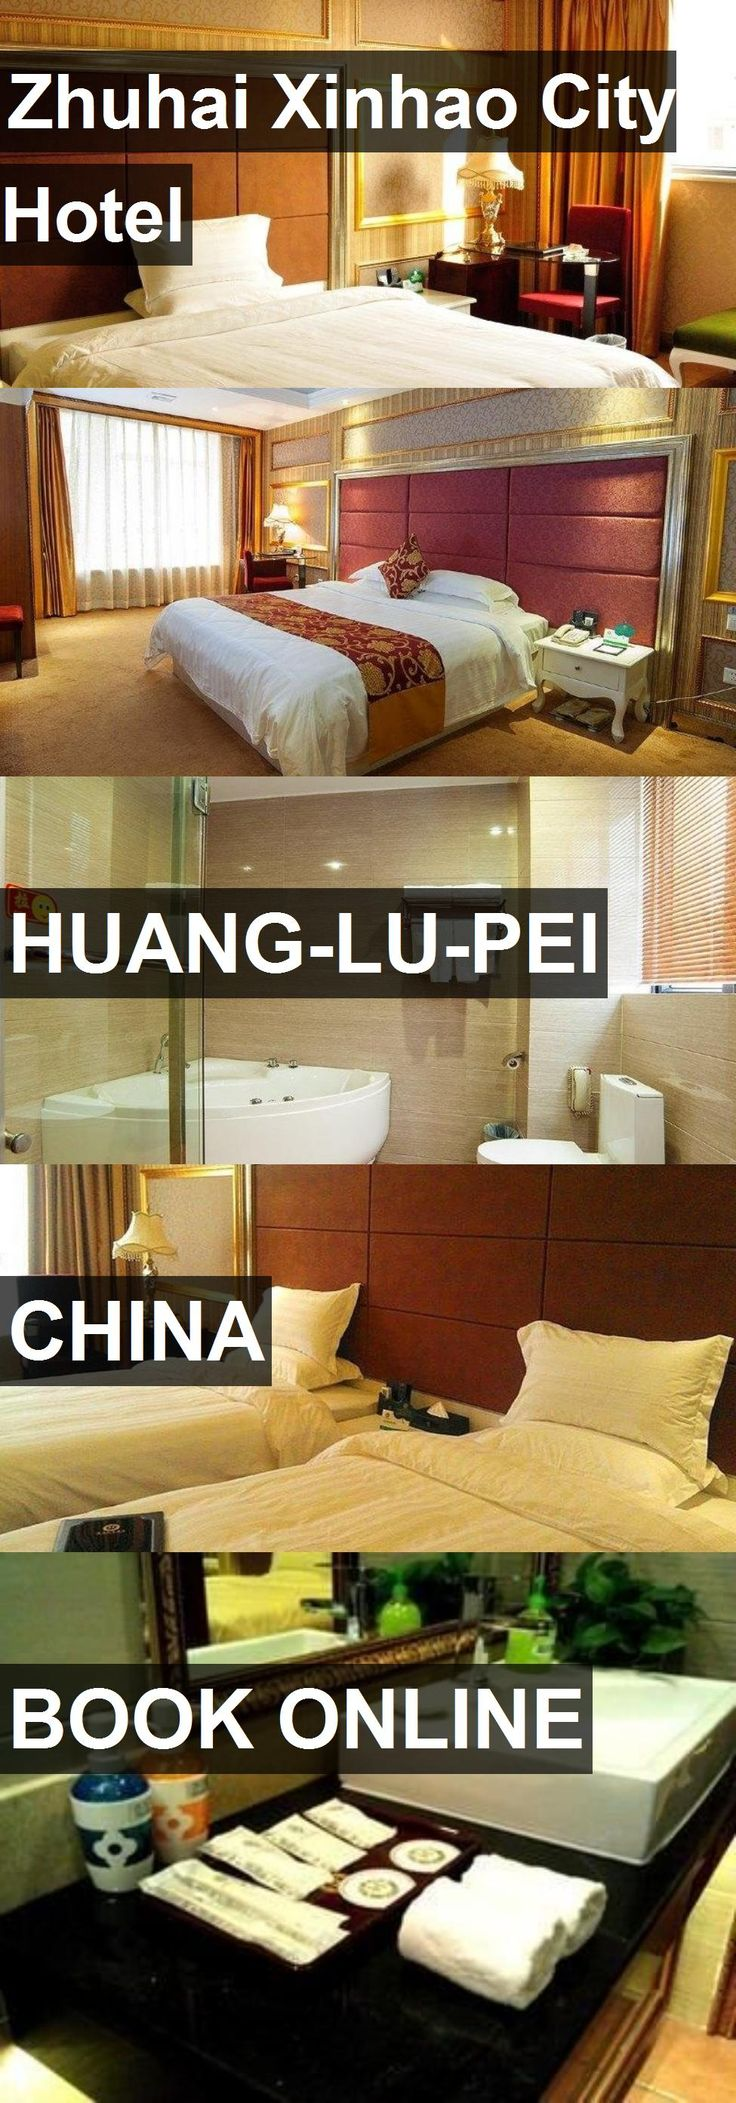 Zhuhai Xinhao City Hotel in Huang-lu-pei, China. For more information, photos, reviews and best prices please follow the link. #China #Huang-lu-pei #travel #vacation #hotel